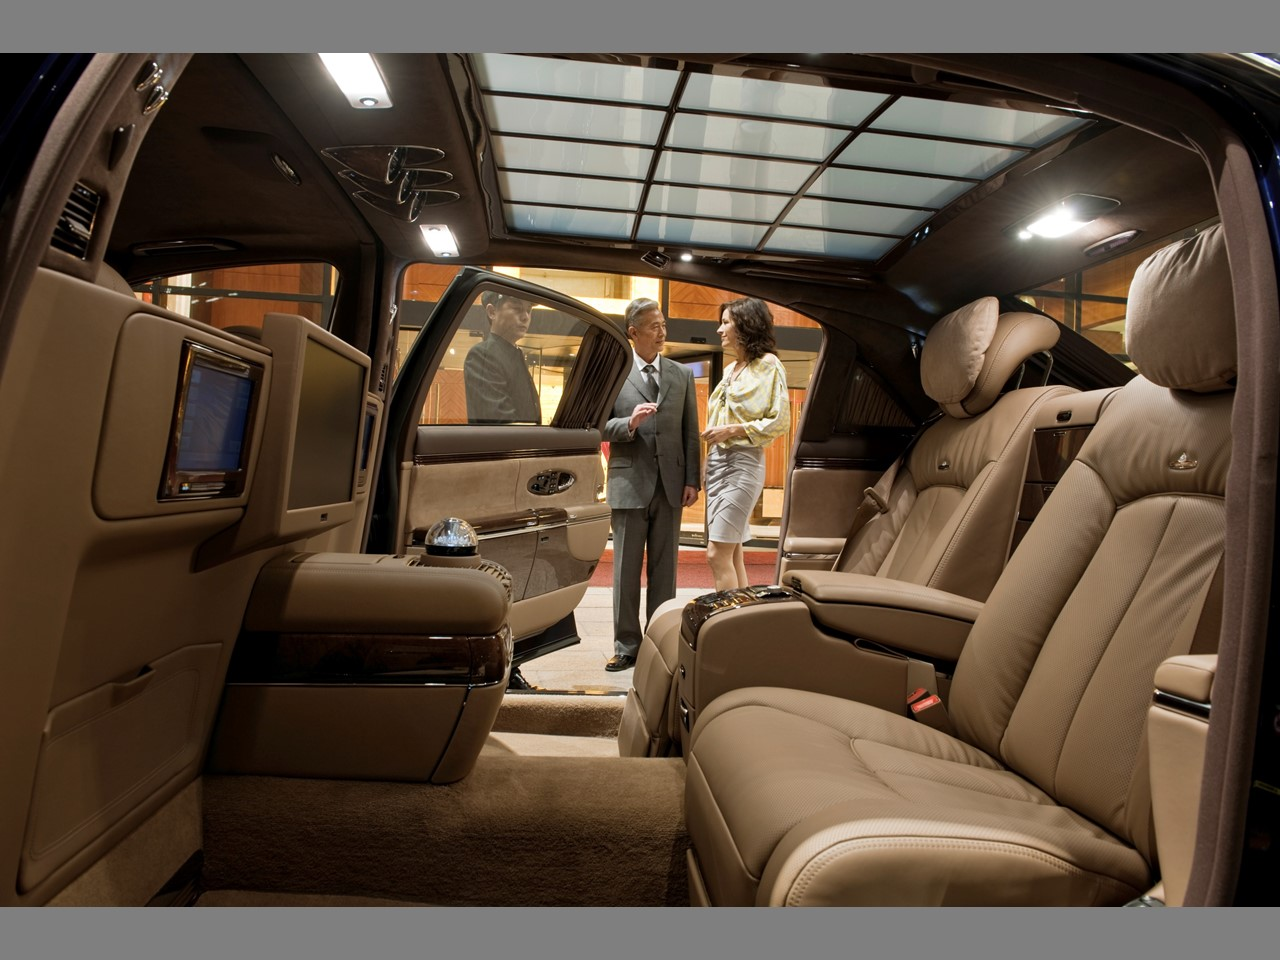 maybach interior 2015. maybach 62 rear compartment interior 2015